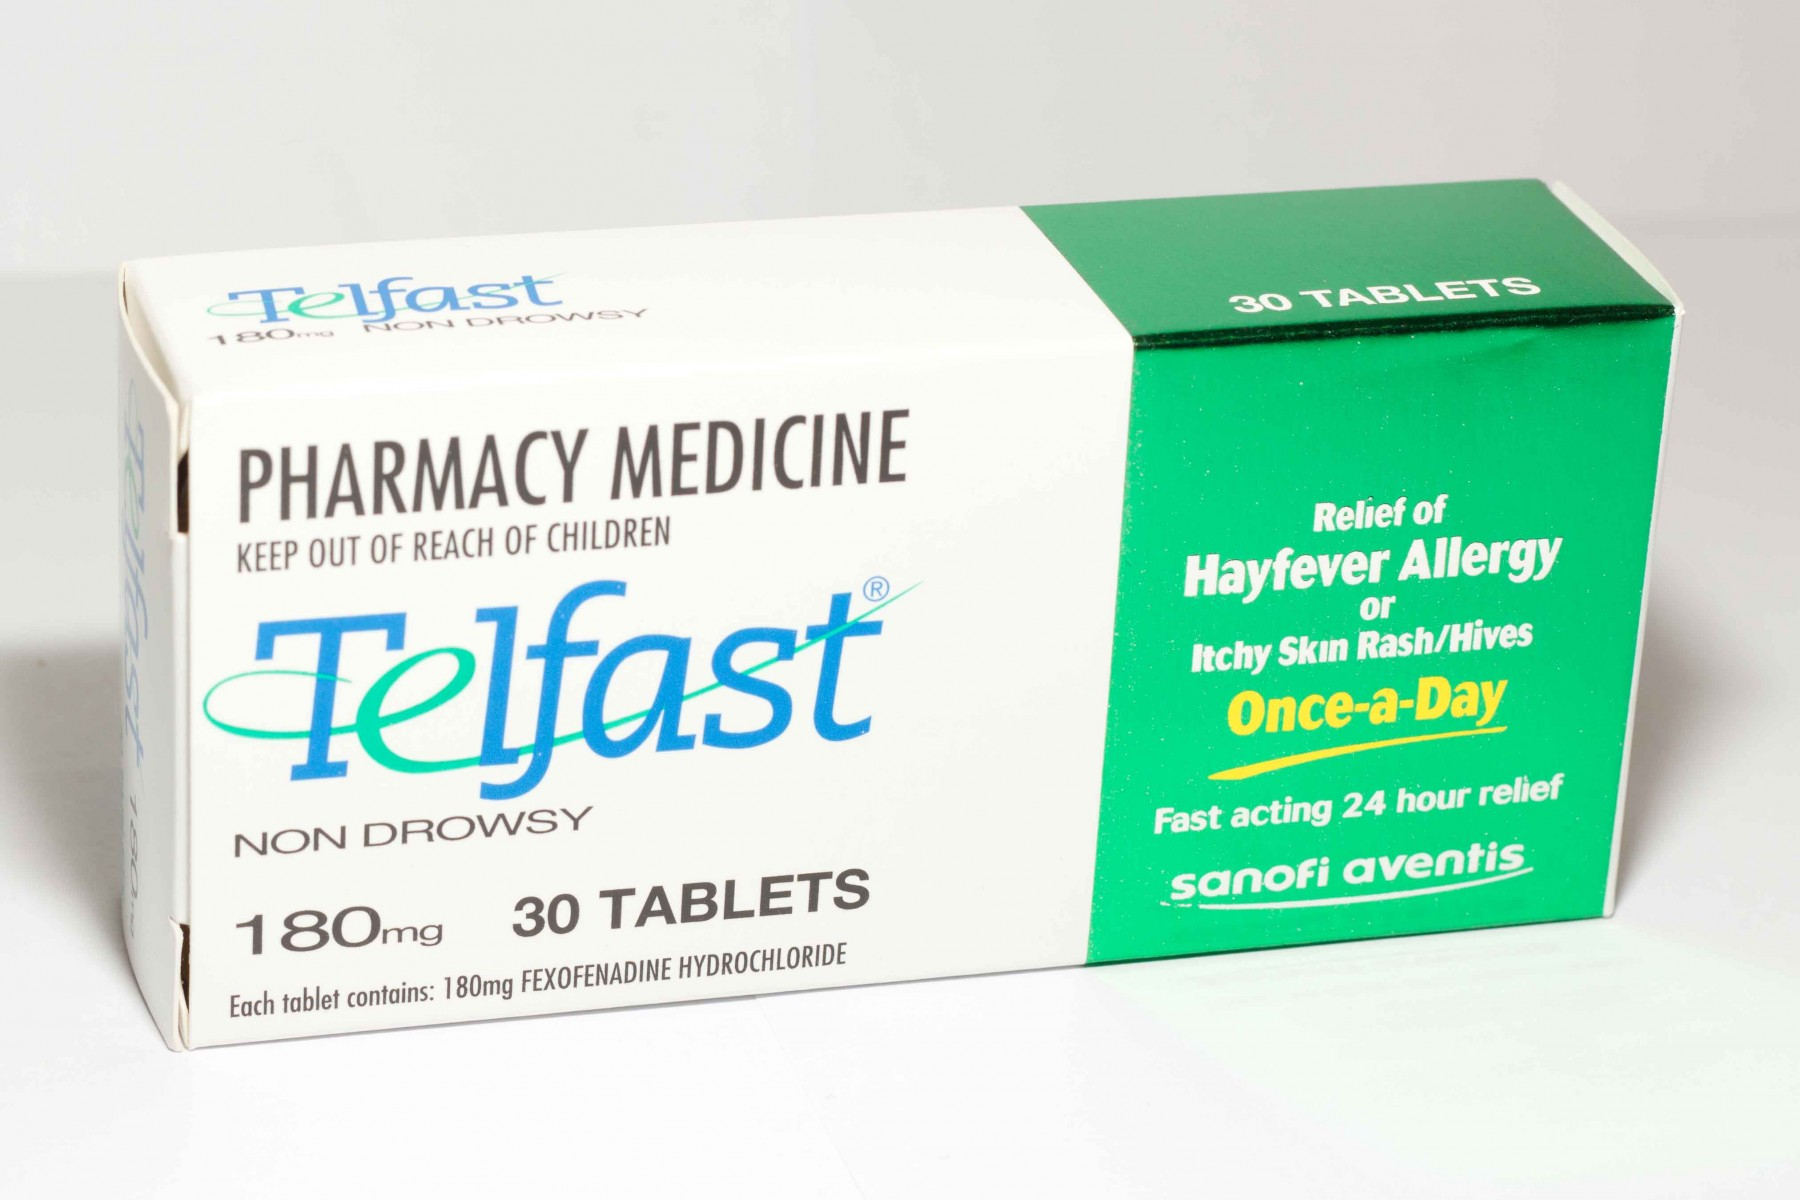 Telfast 60 mg dosage